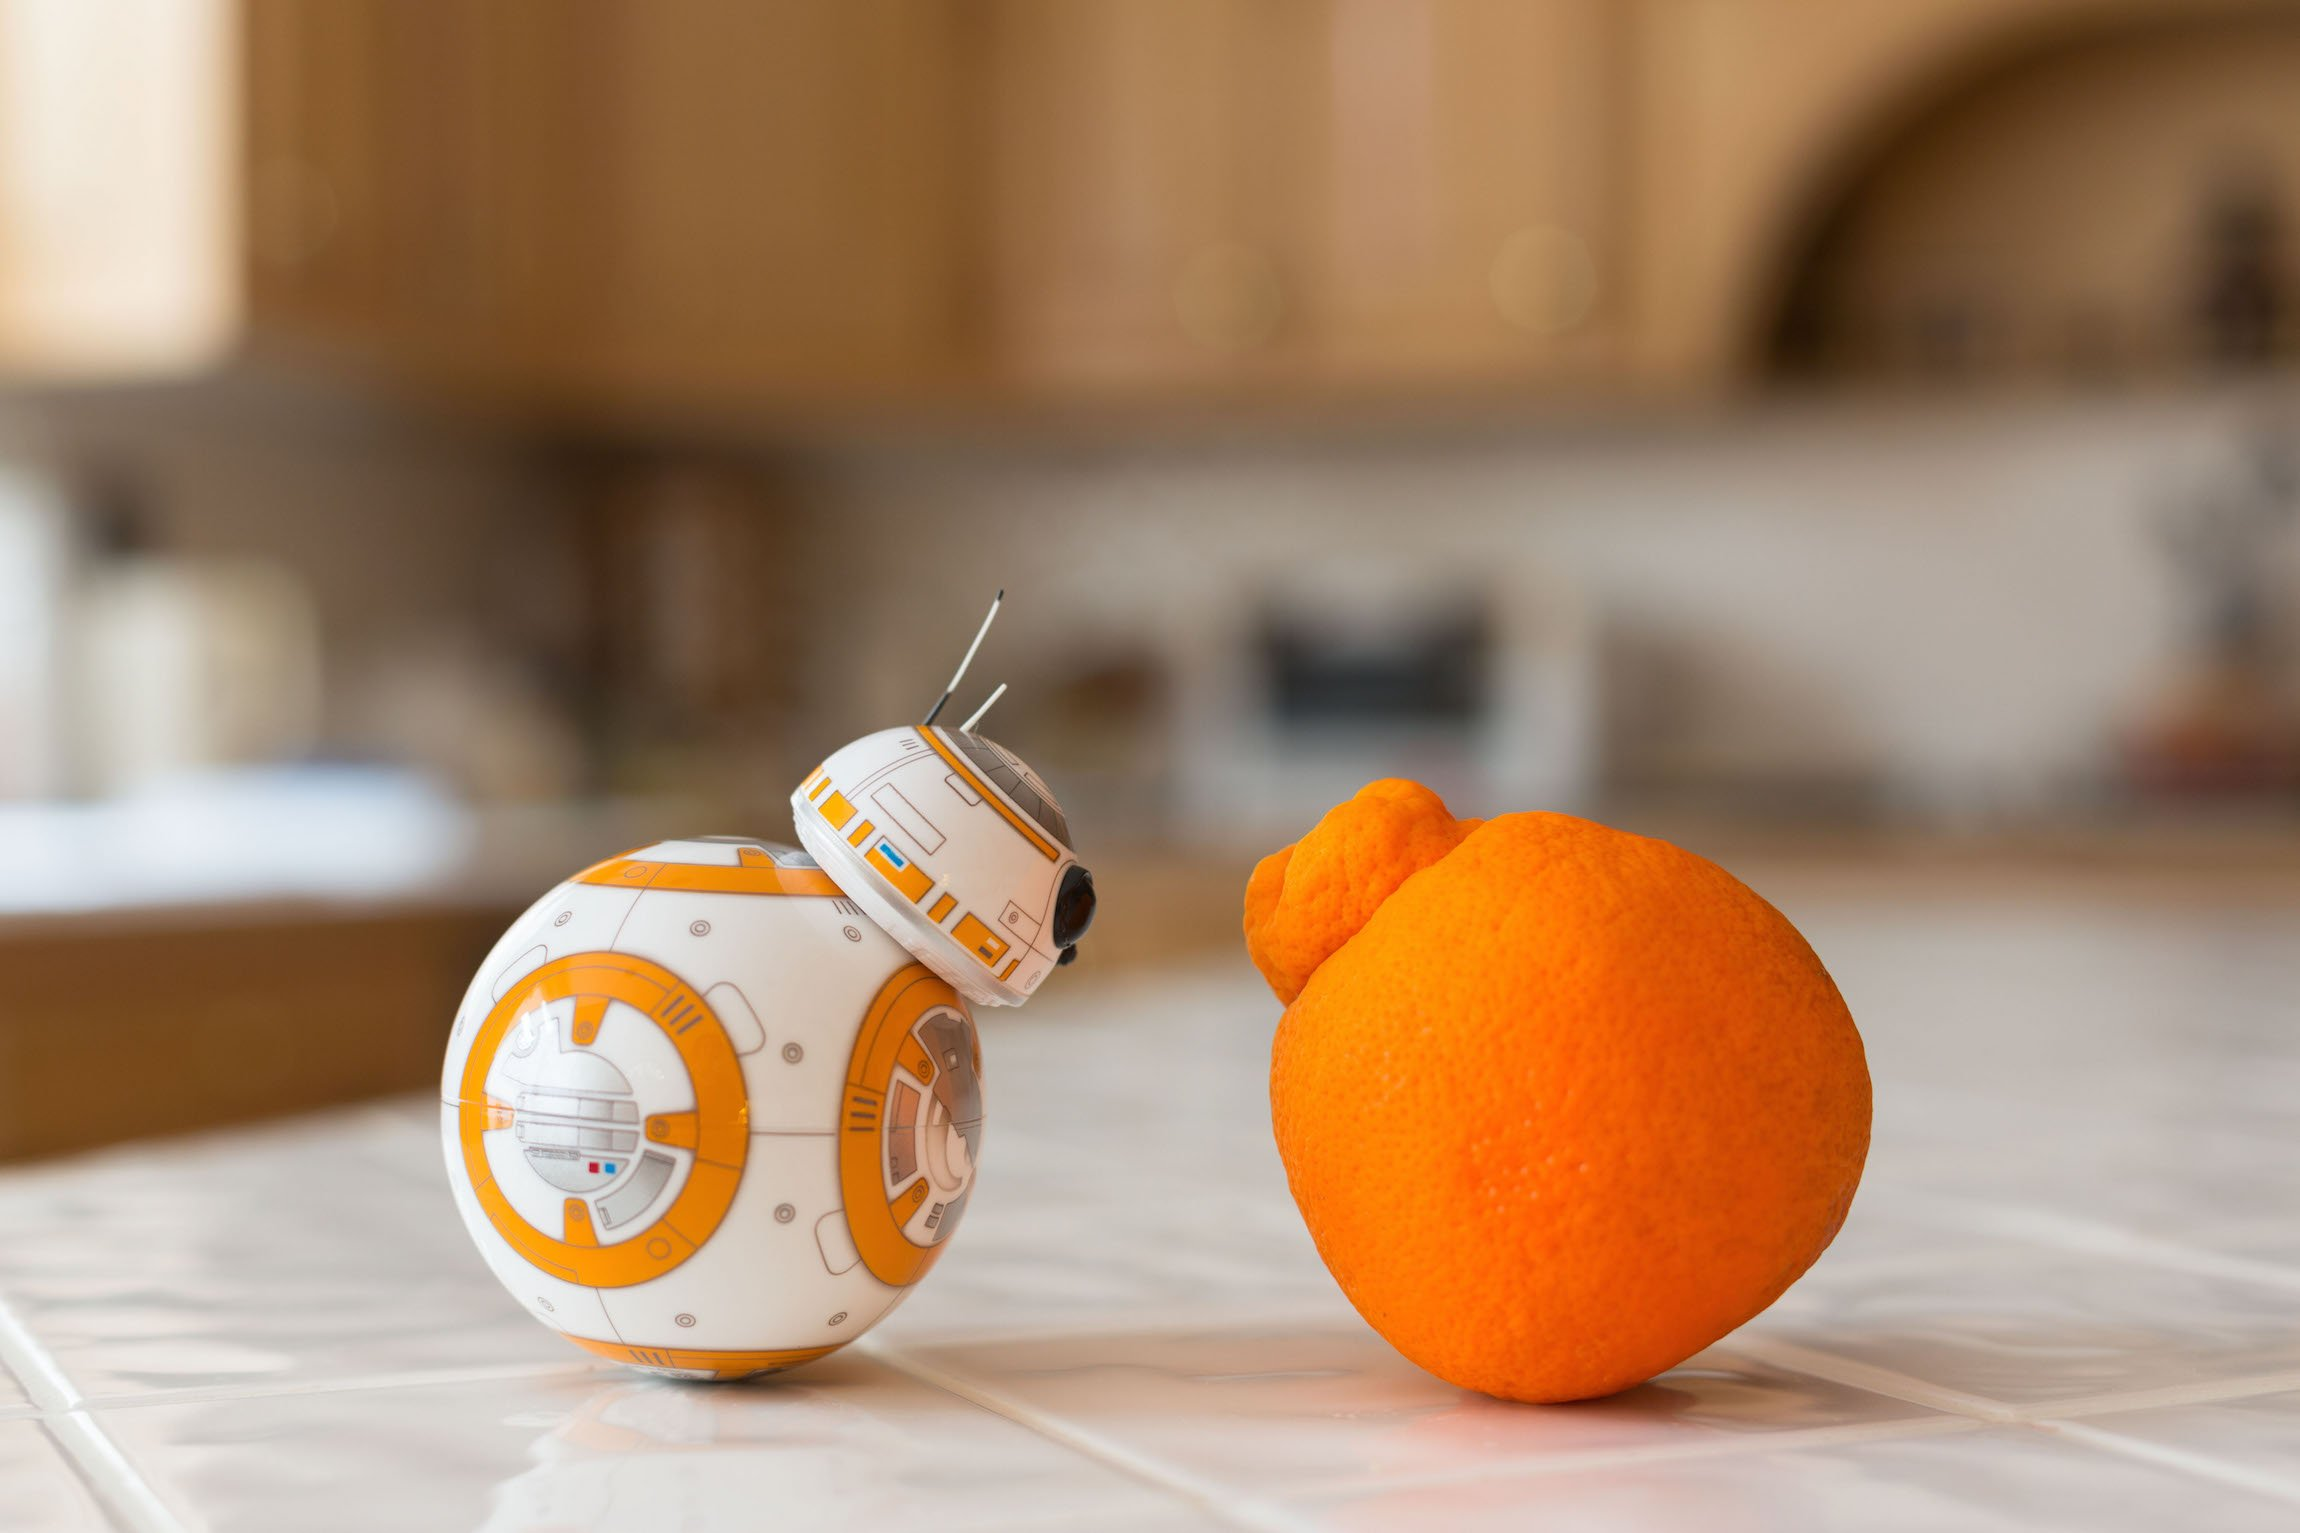 bb8 wallpaper hd - photo #4